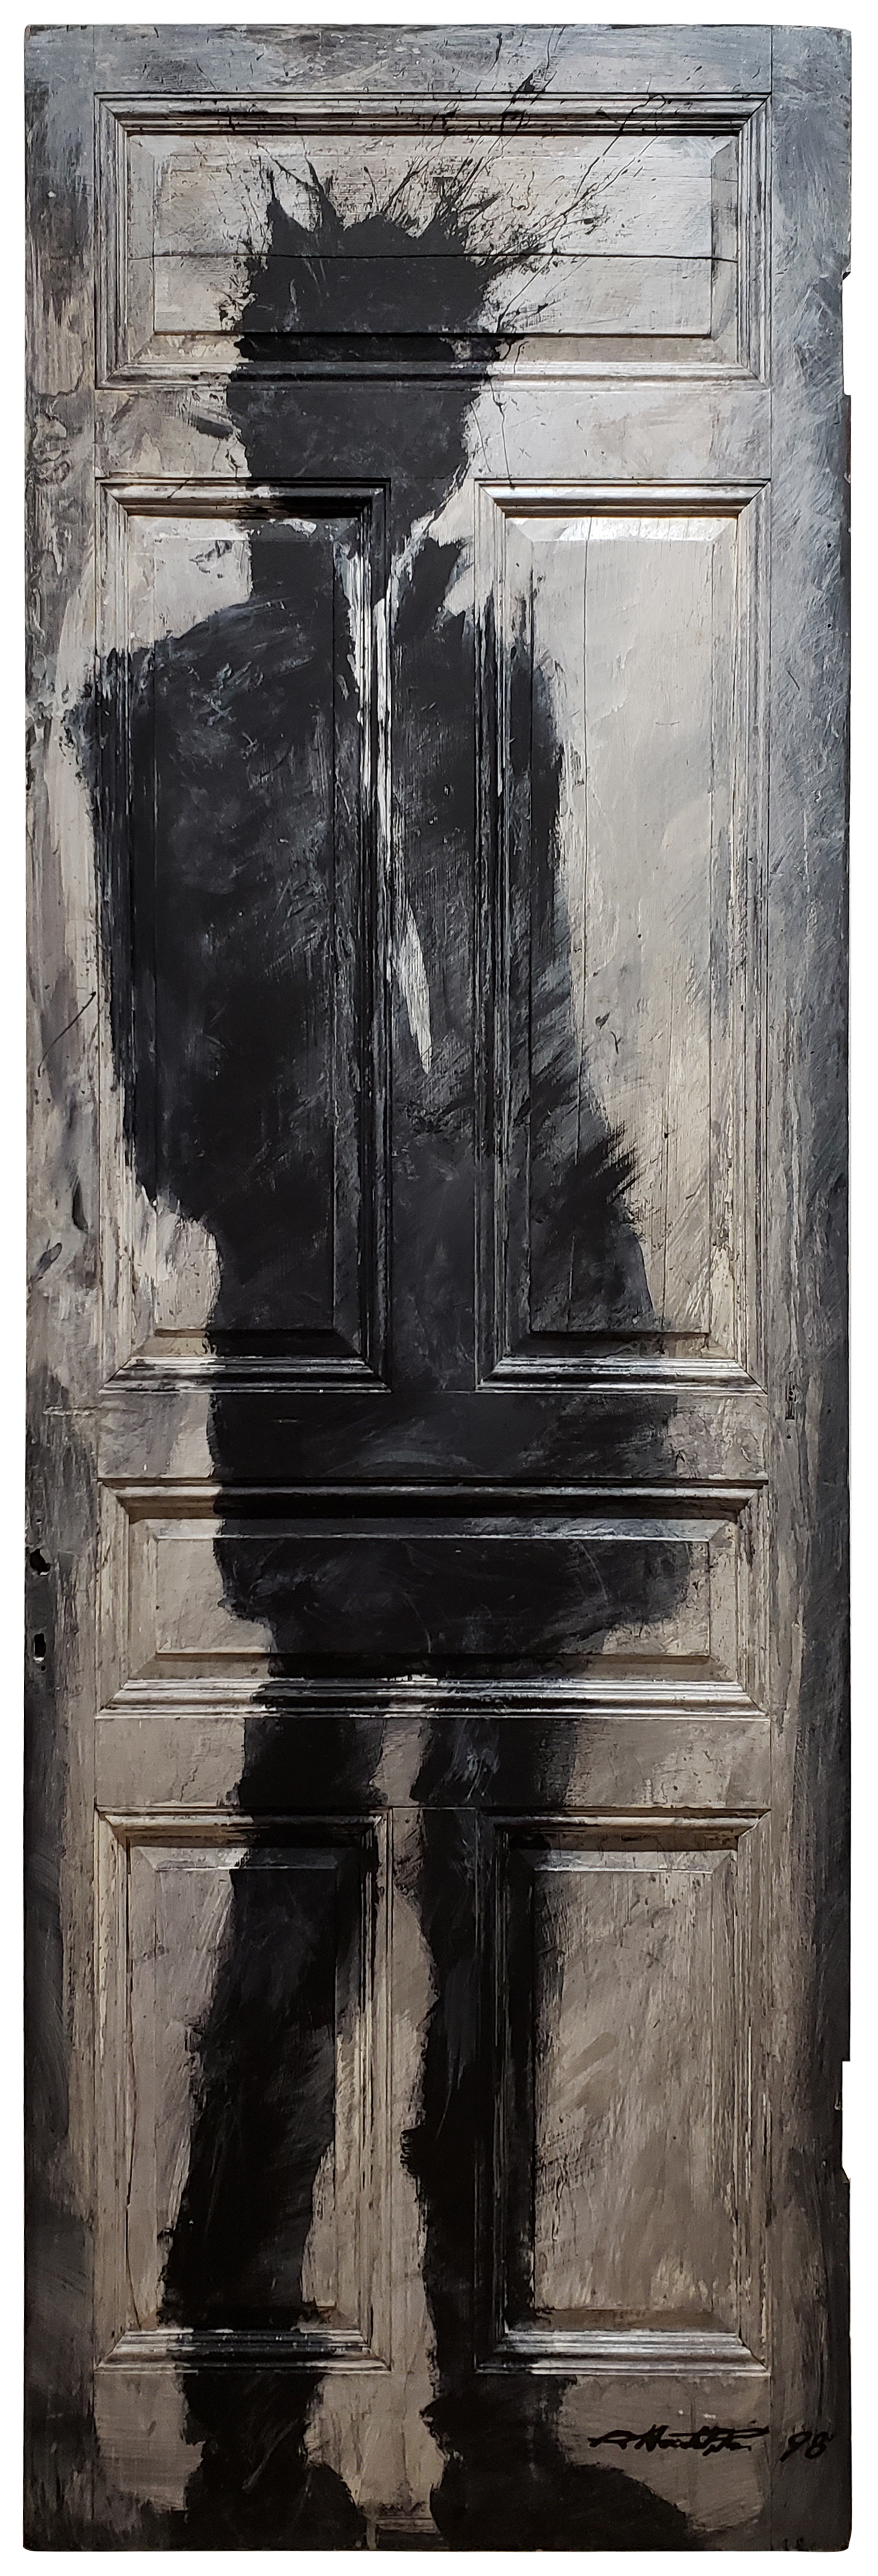 "RICHARD HAMBLETON  Standing Shadow on Door , 1998 Acrylic on wood door 85""x29""  Price upon request"